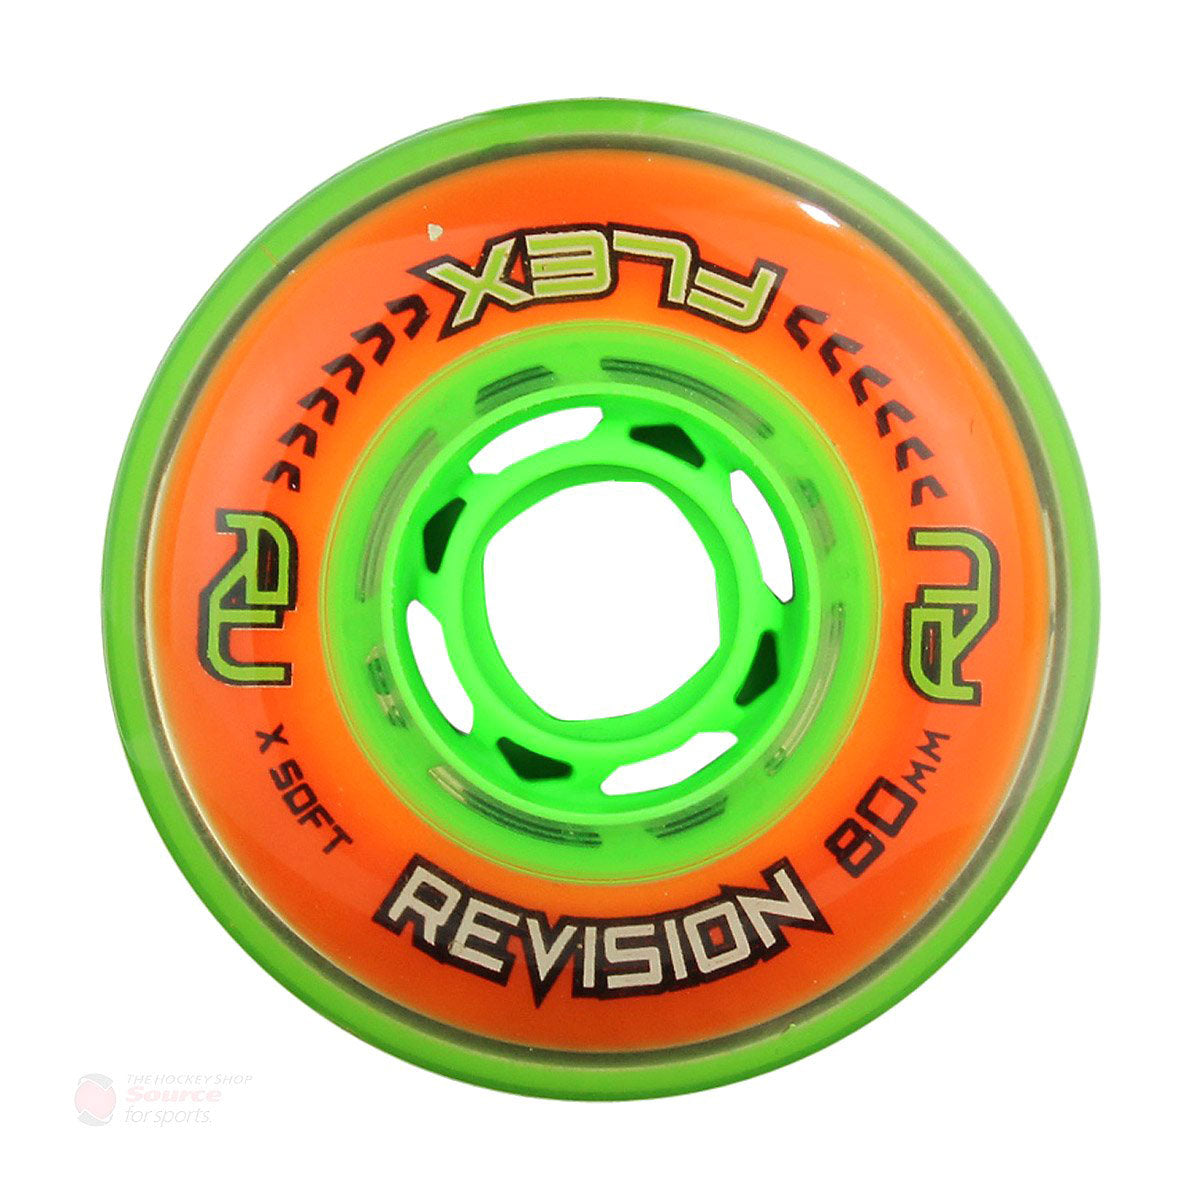 Revision Flex X-Soft Wheels